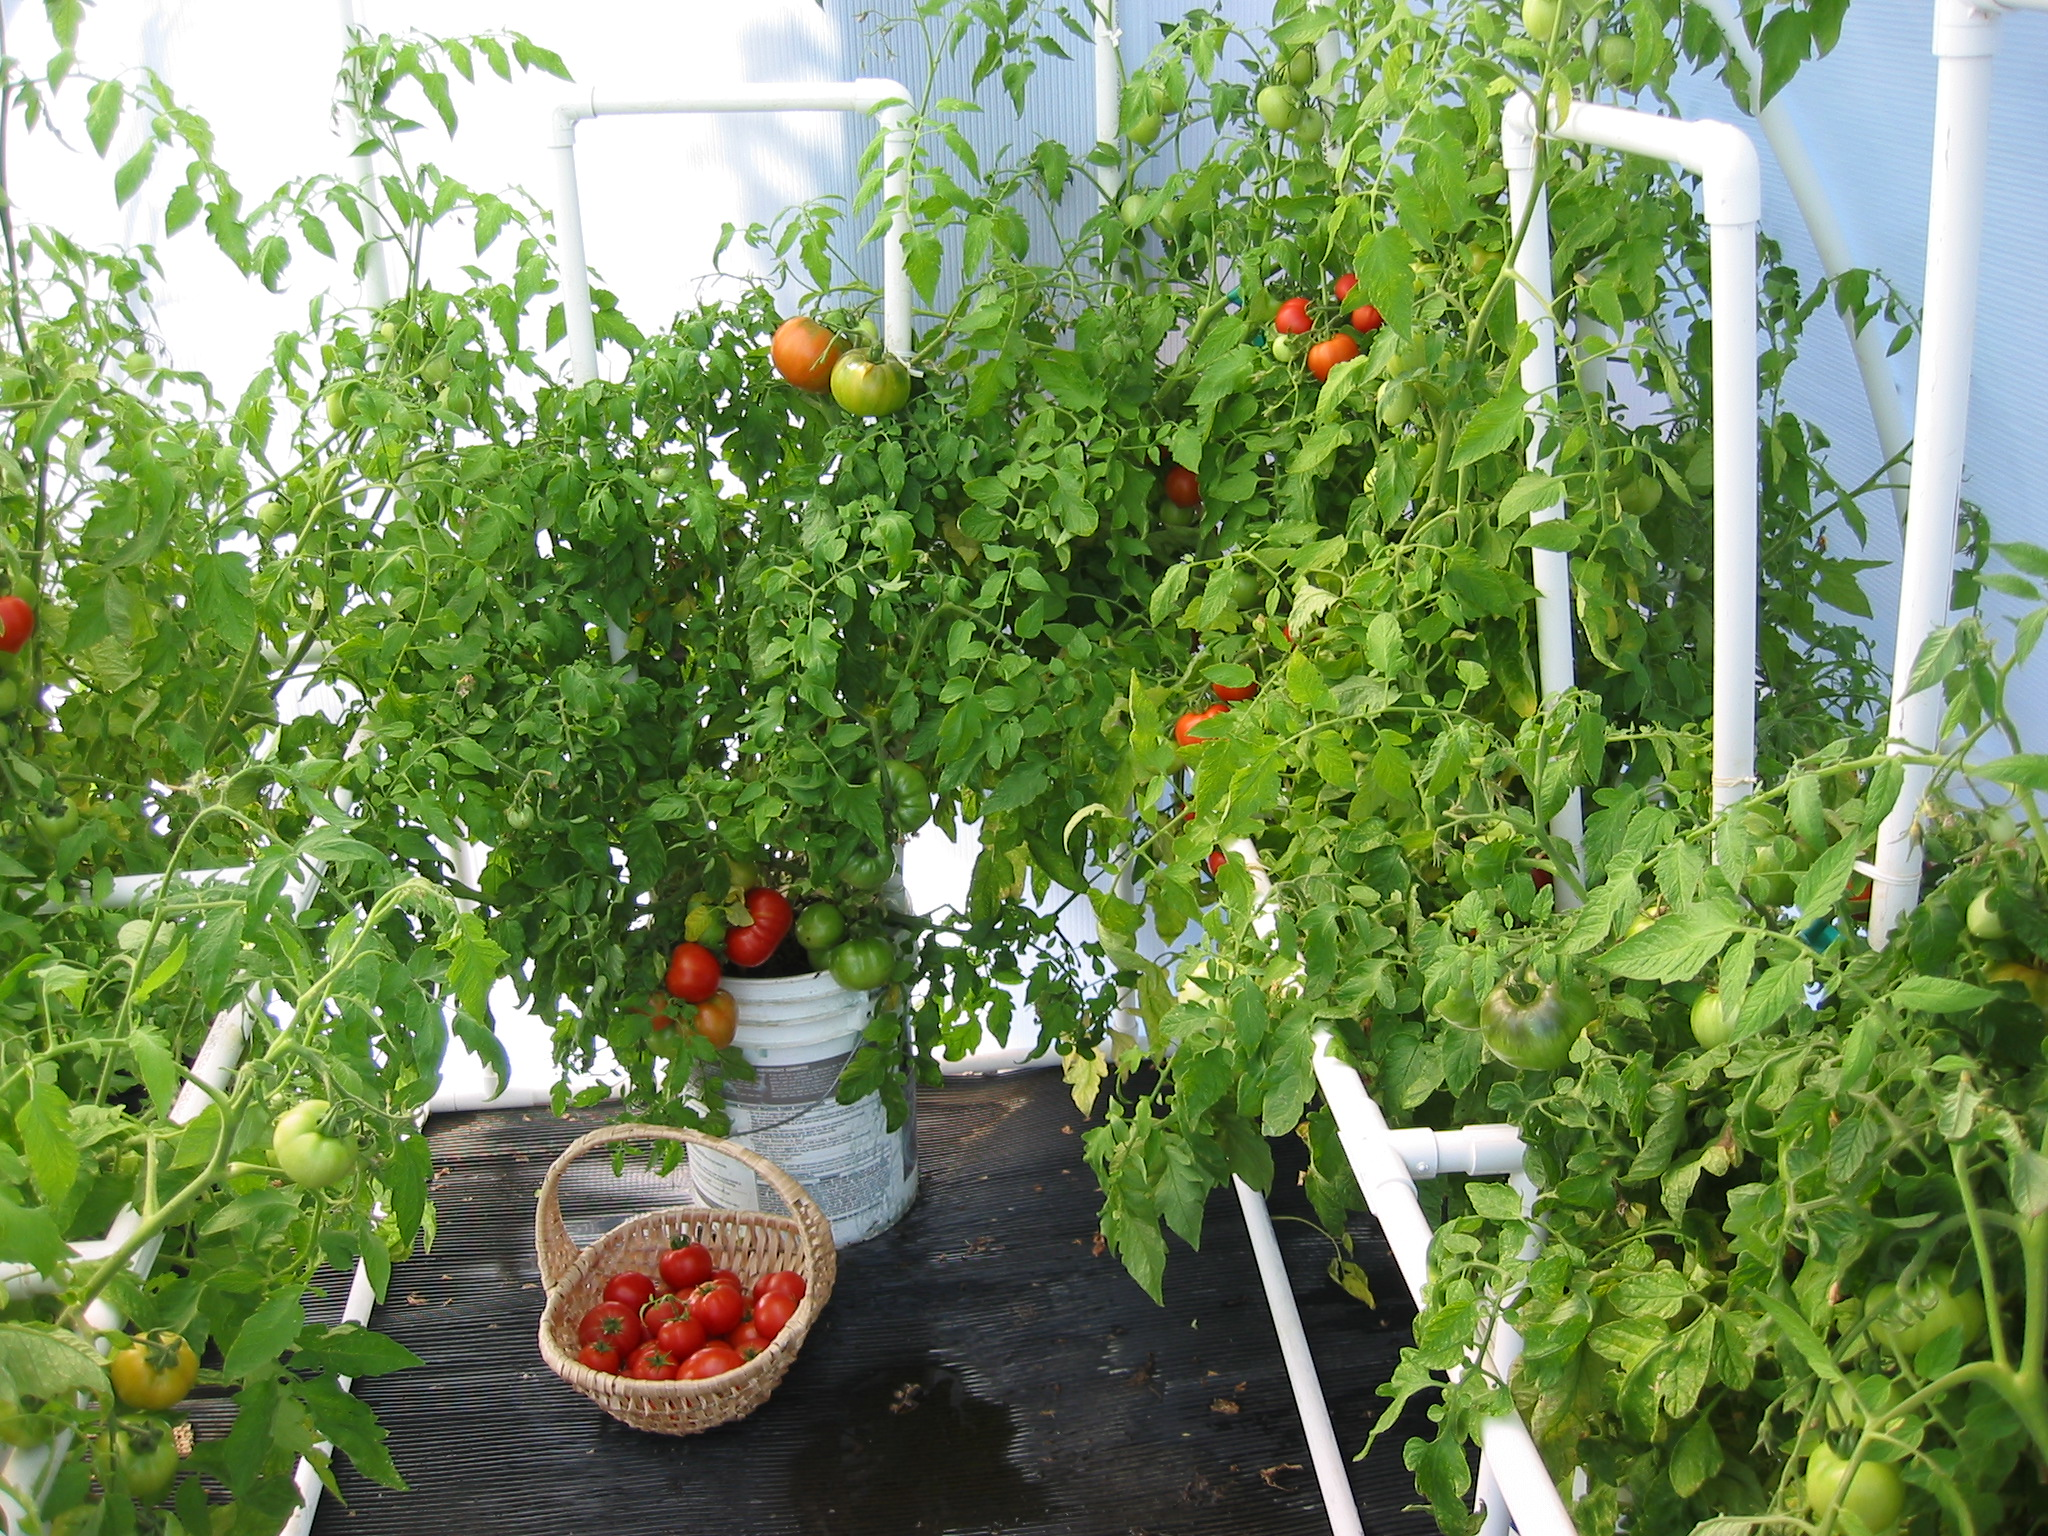 Tomatoes grown in a Solexx Greenhouse